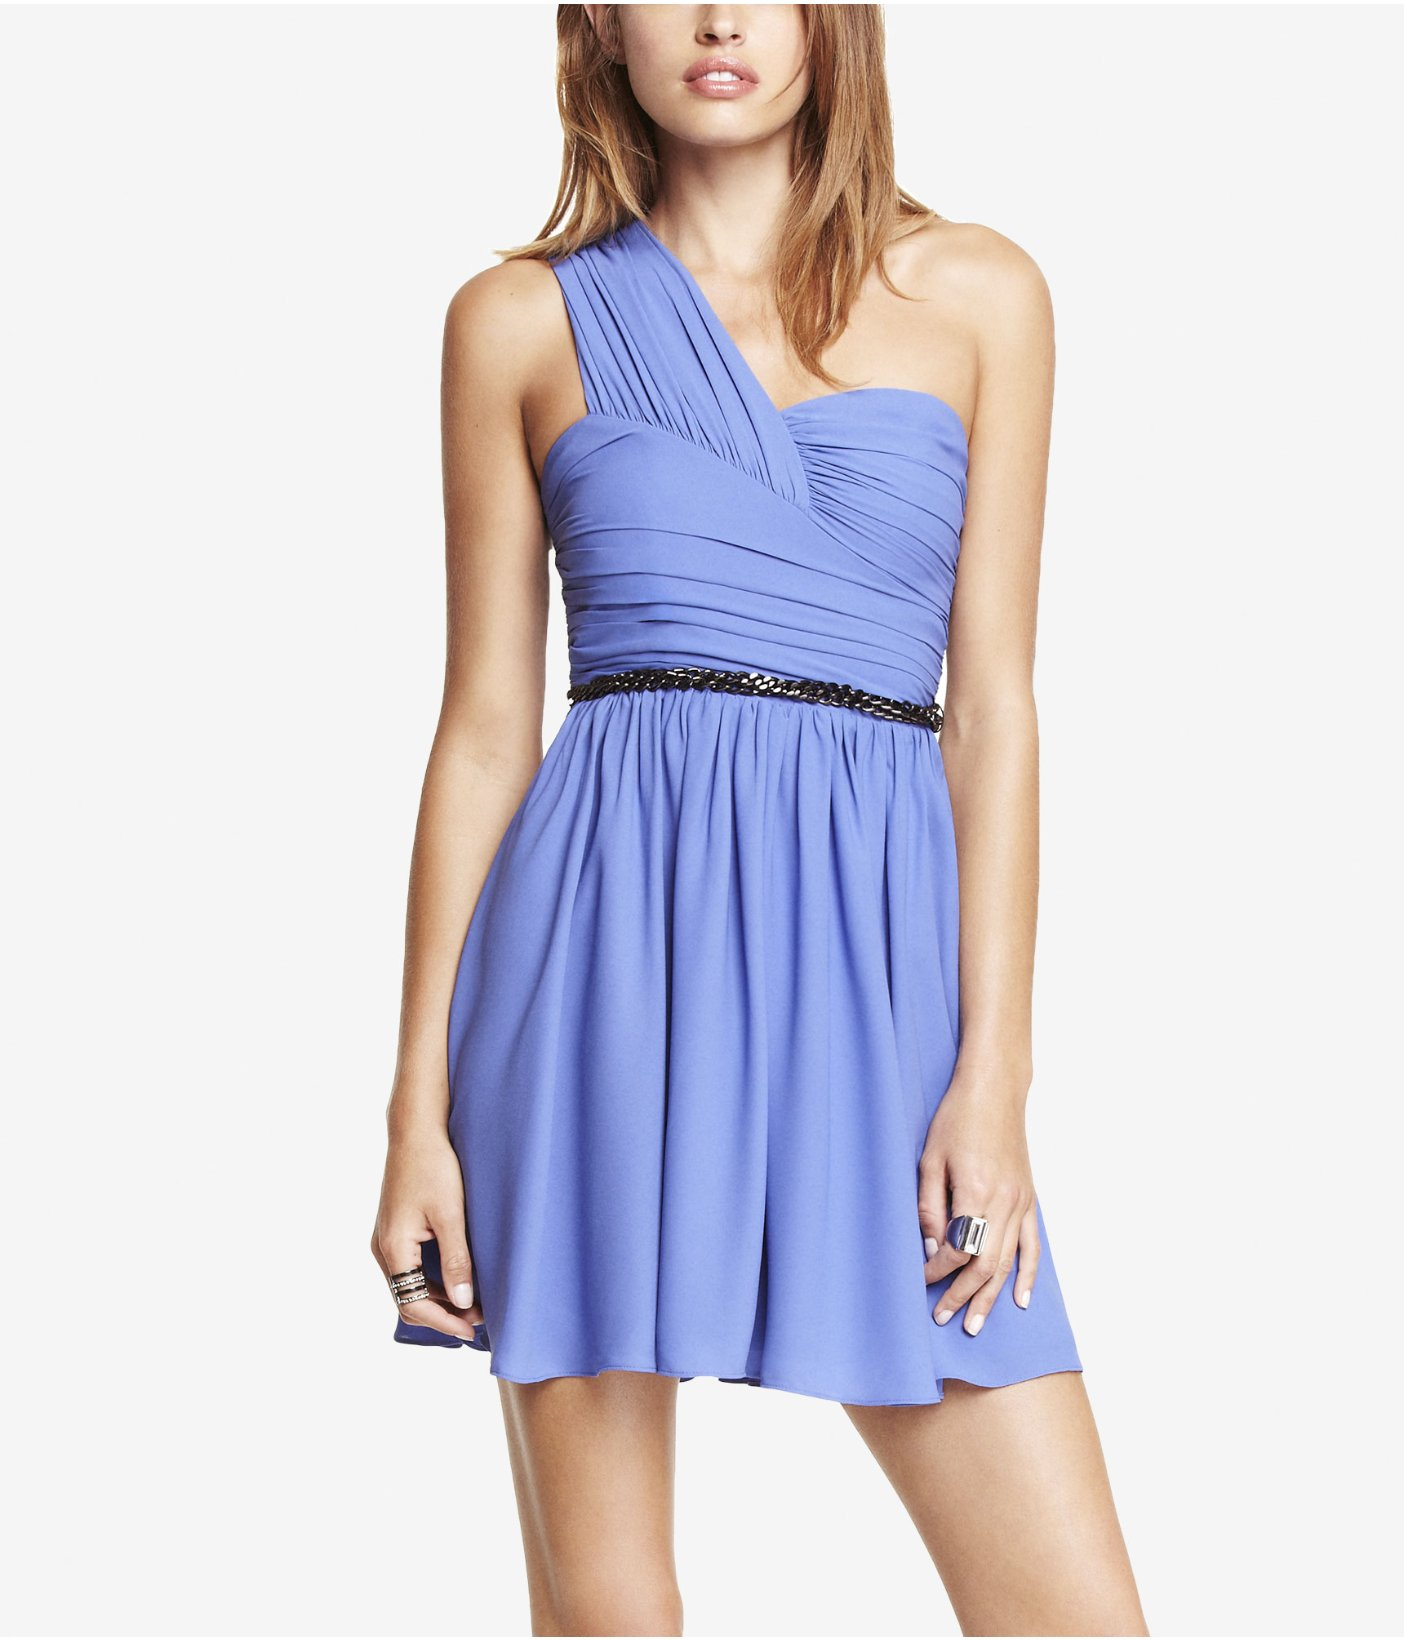 Lyst - Express One Shoulder Ruched Dress in Blue